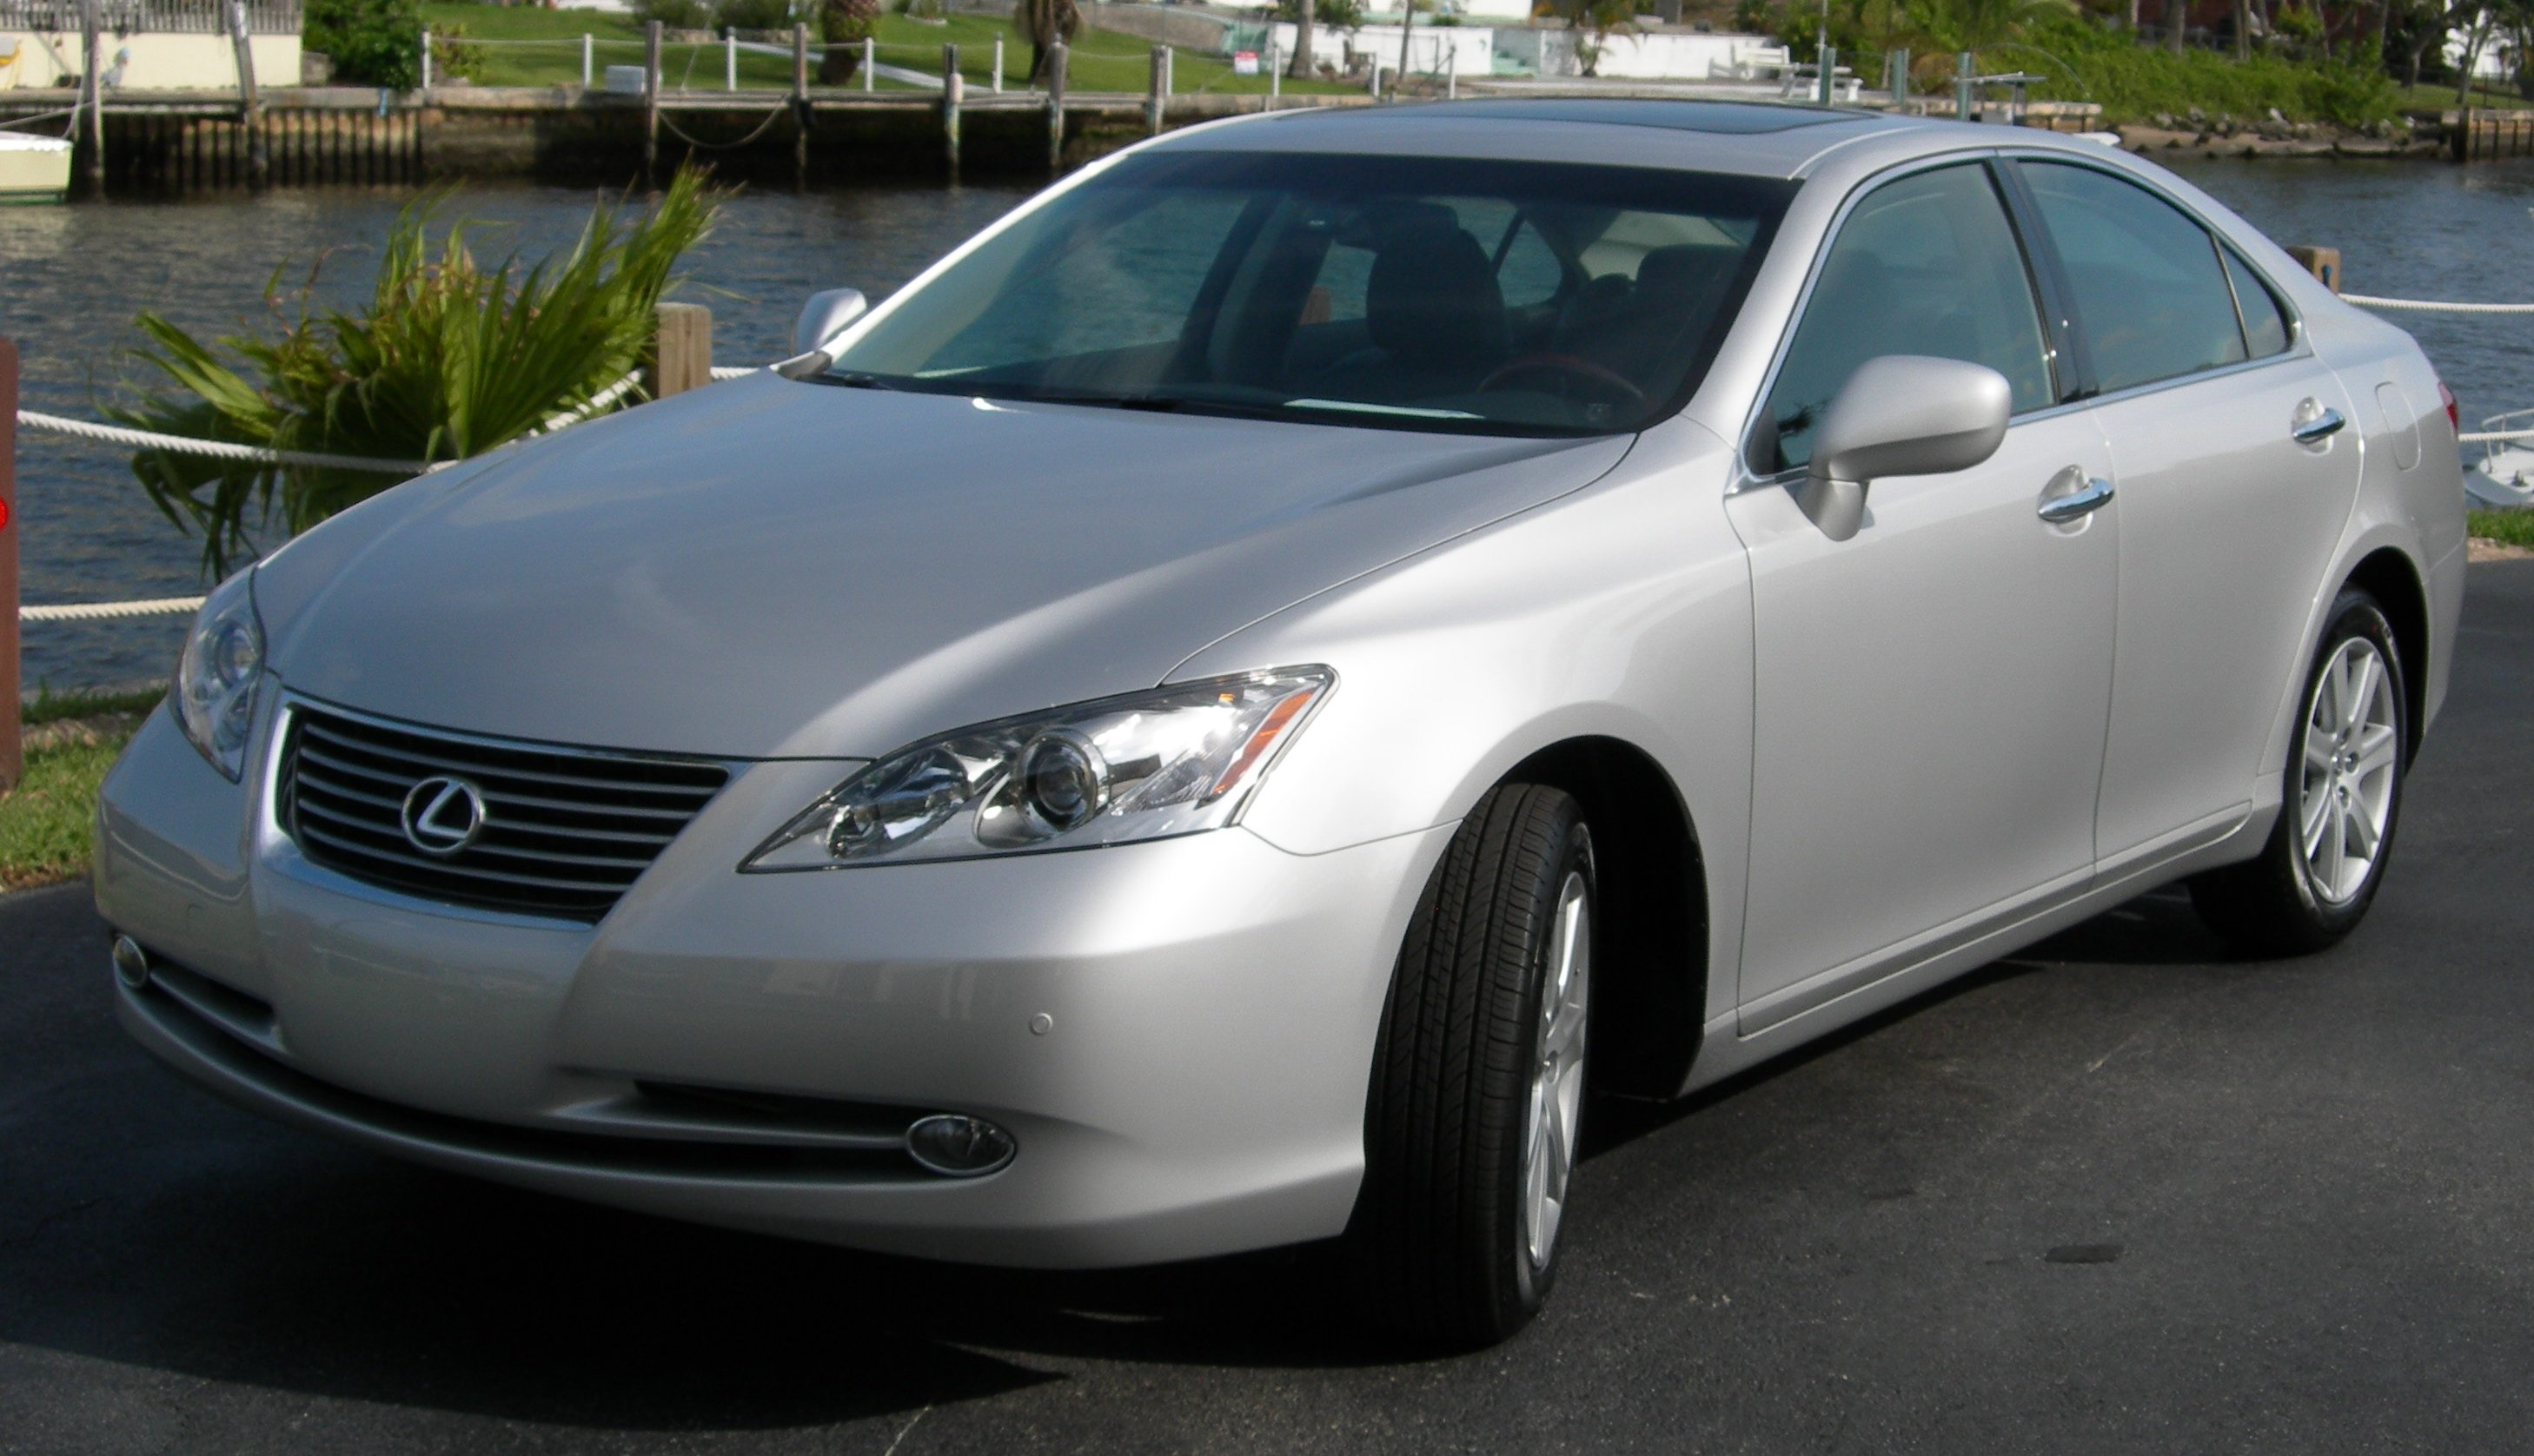 File:2007 Lexus ES 350.jpg - Wikimedia Commons